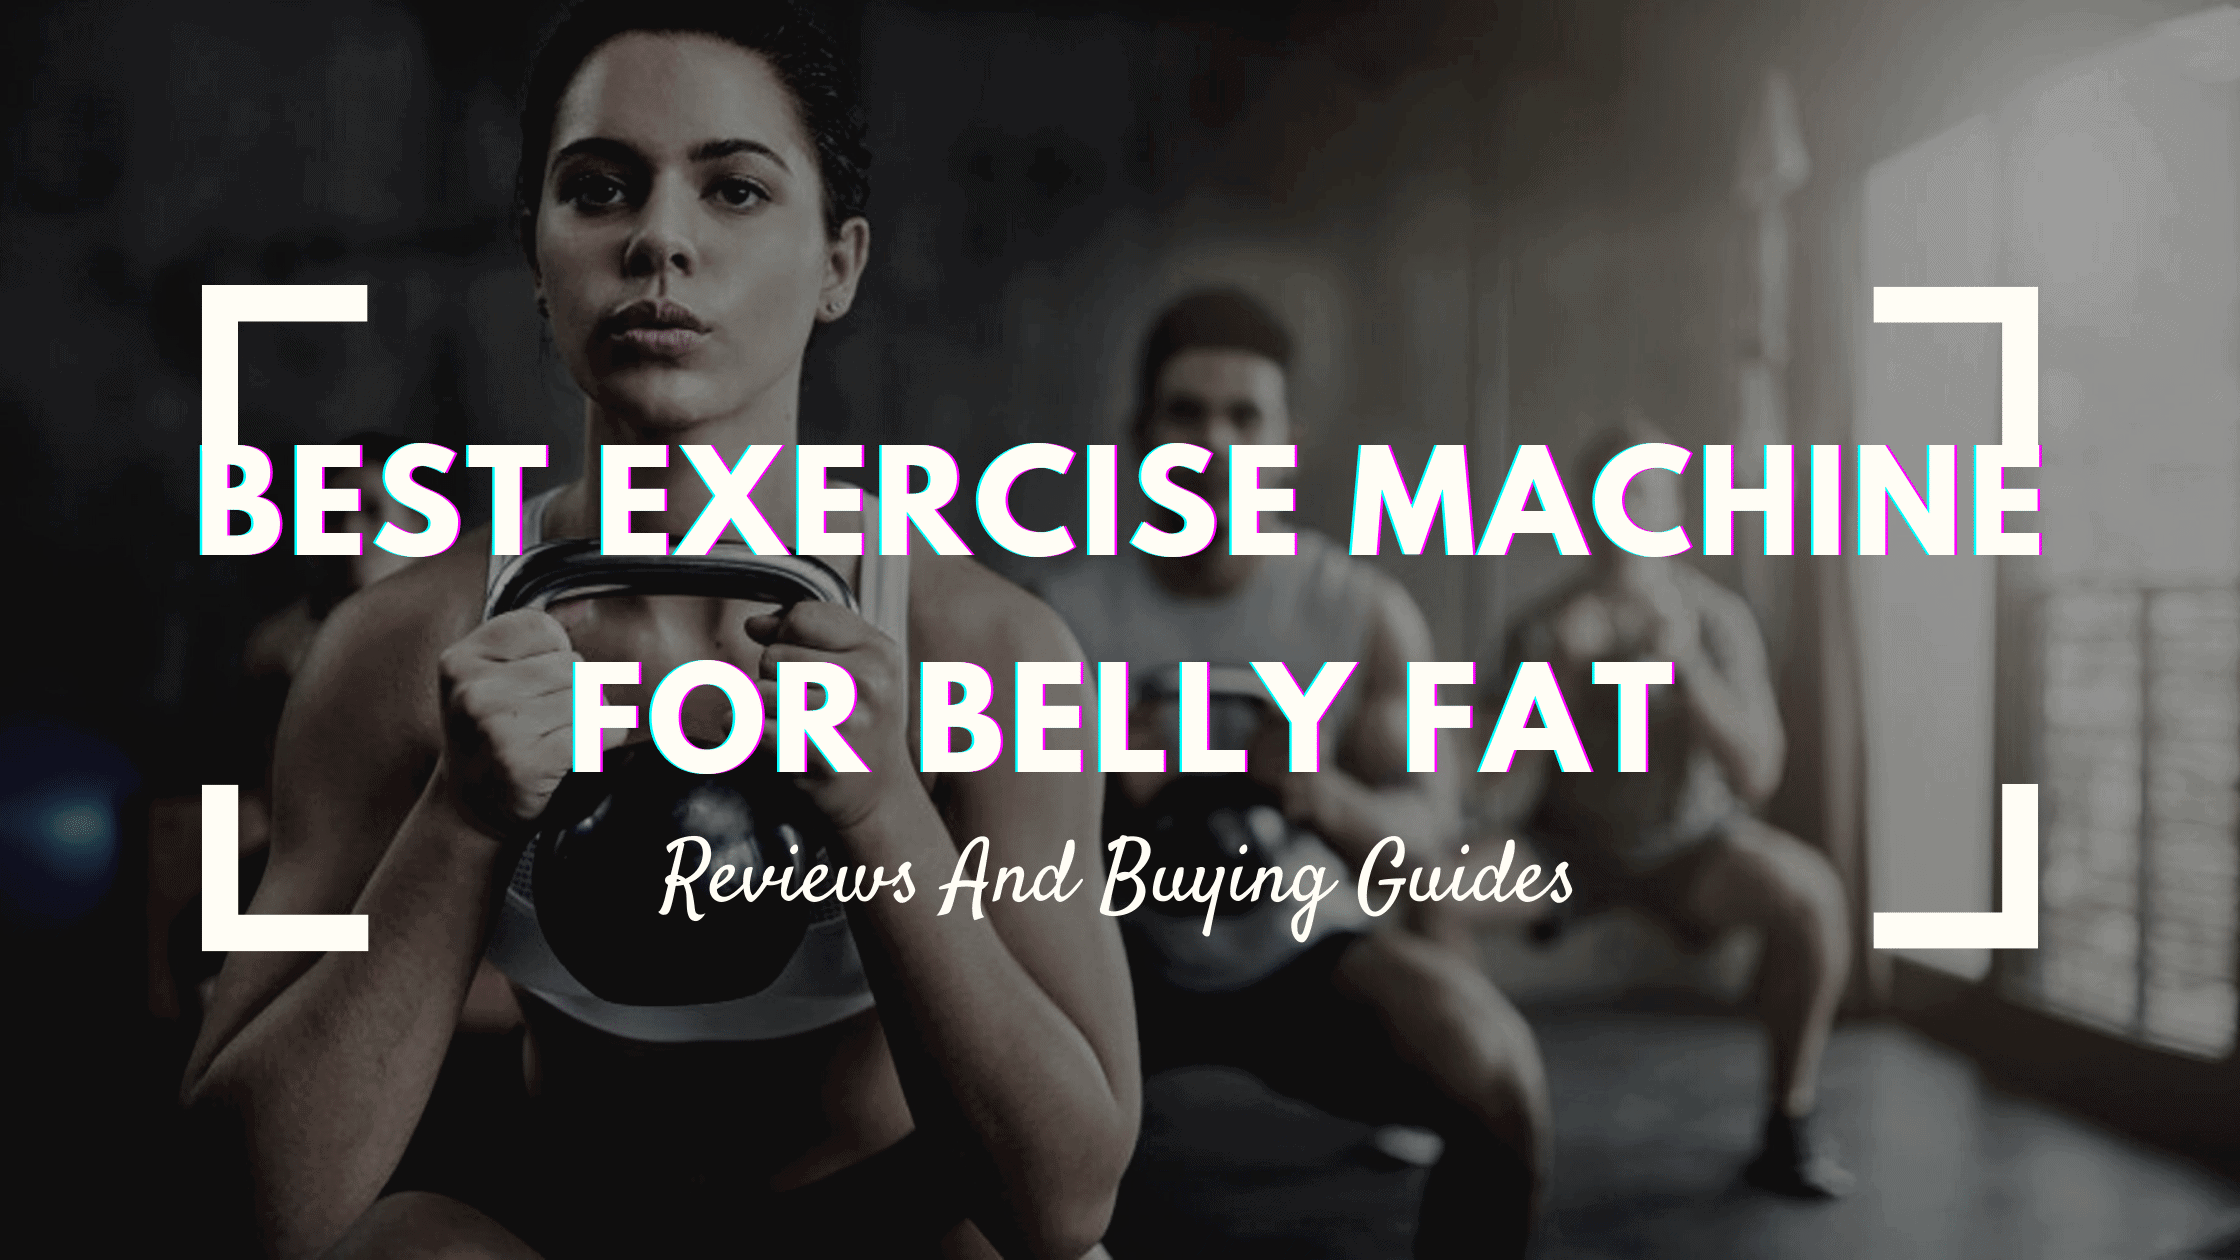 Best Exercise Machine For Belly Fat